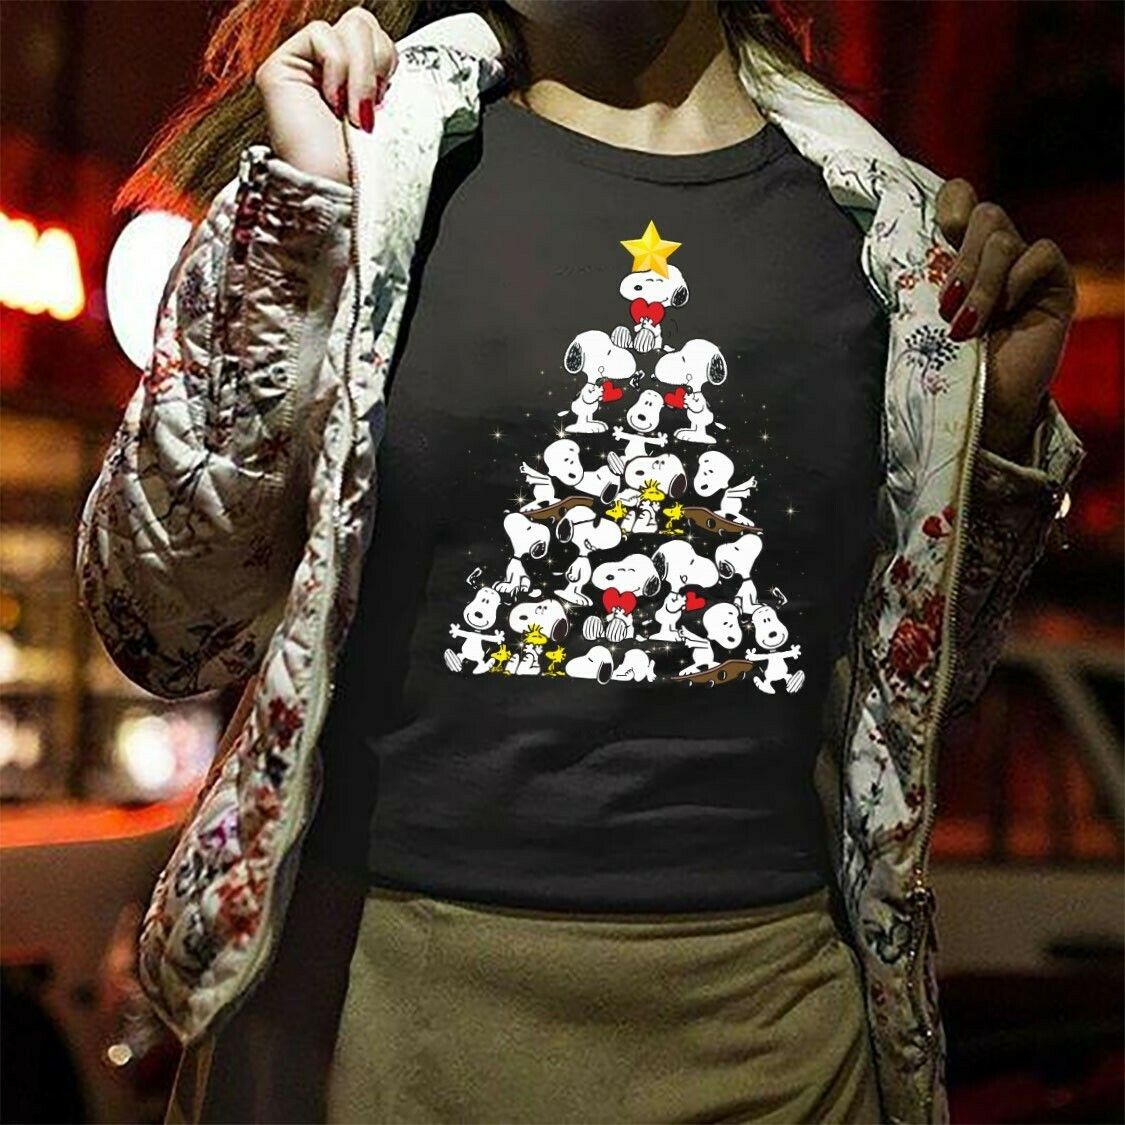 Christmas Tree Snoopy Shirt Gifts For Lovers Christmas Noel XMas Family Vacation Holiday Friends Team Party T-Shirt Long Sleeve Sweatshirt Hoodie Jolly Family Gifts